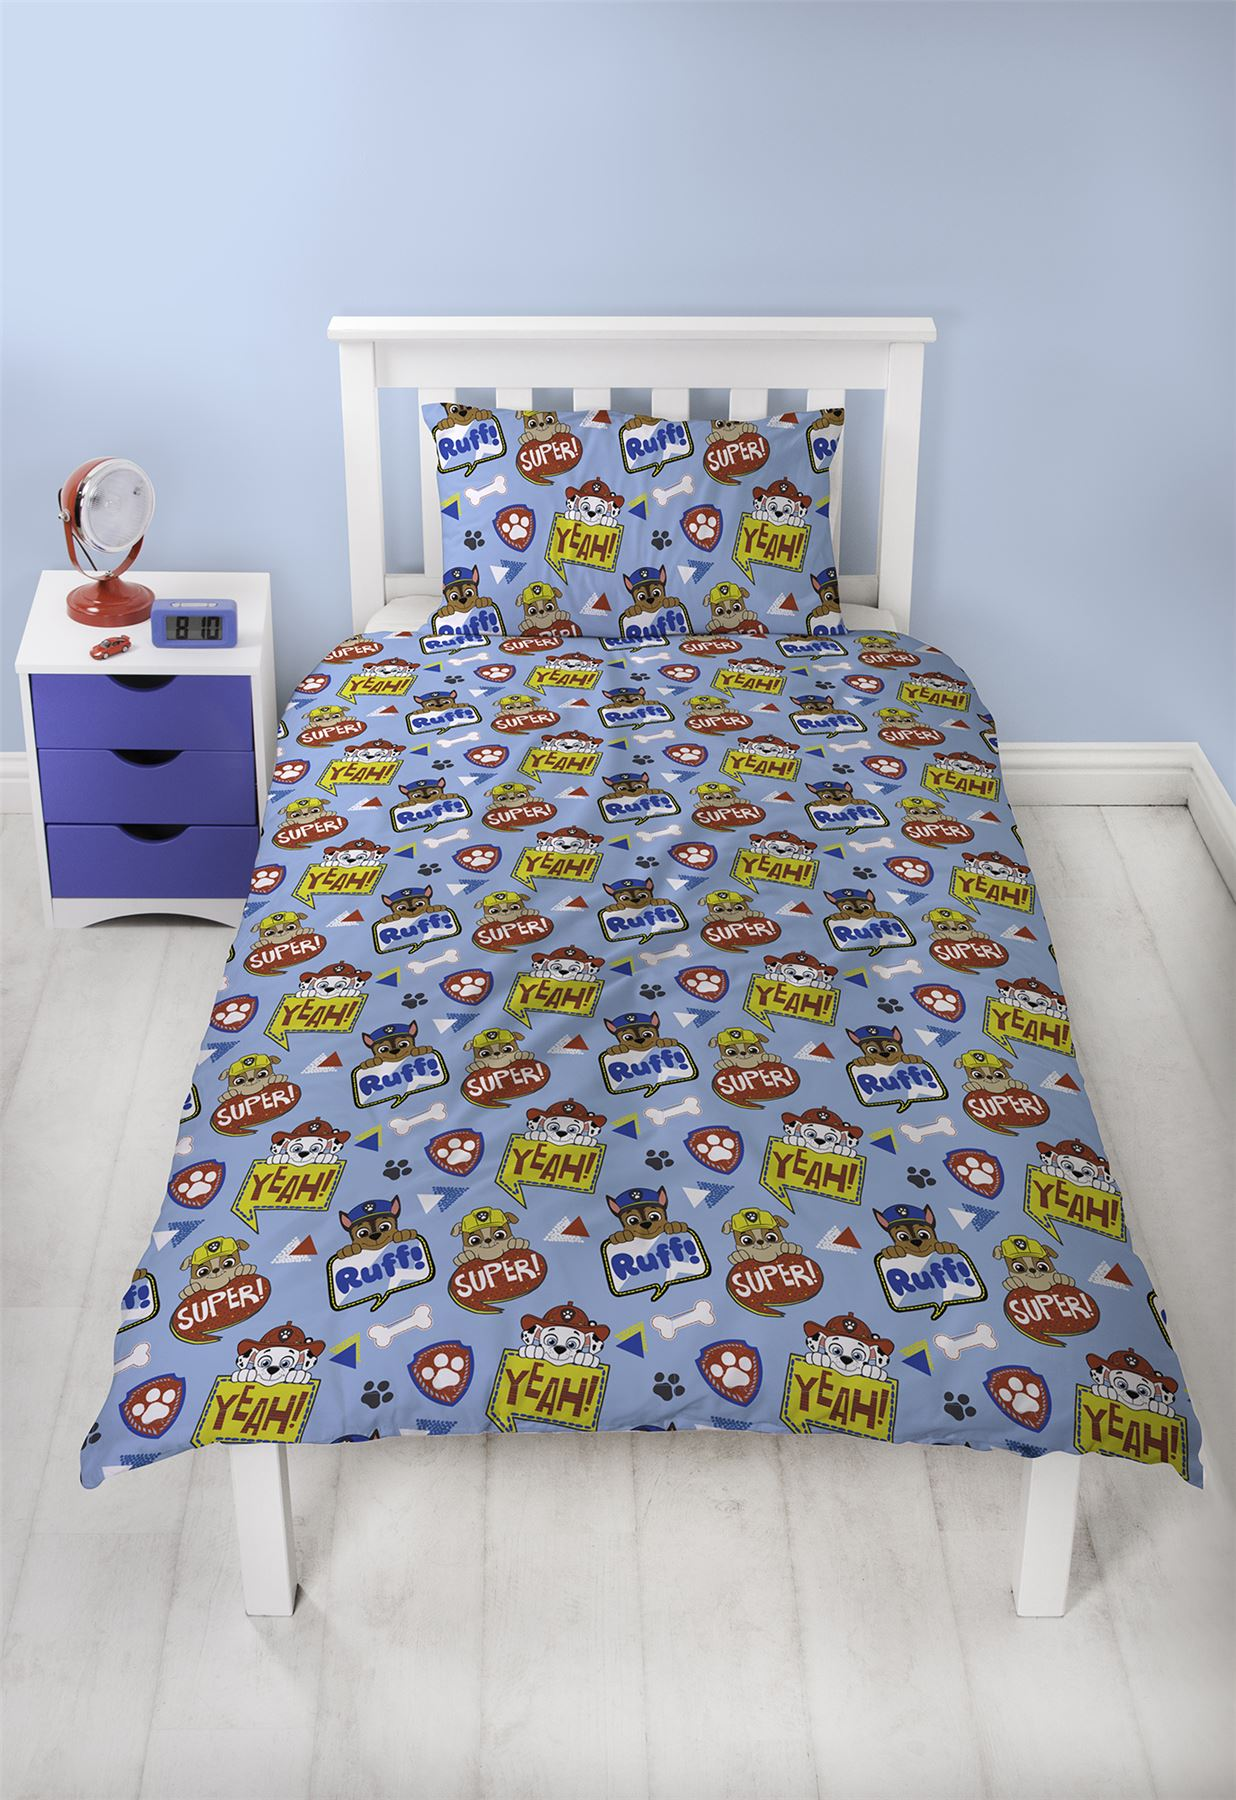 Official-Paw-Patrol-Licensed-Duvet-Covers-Single-Double-Chase-Skye-Marshall thumbnail 30